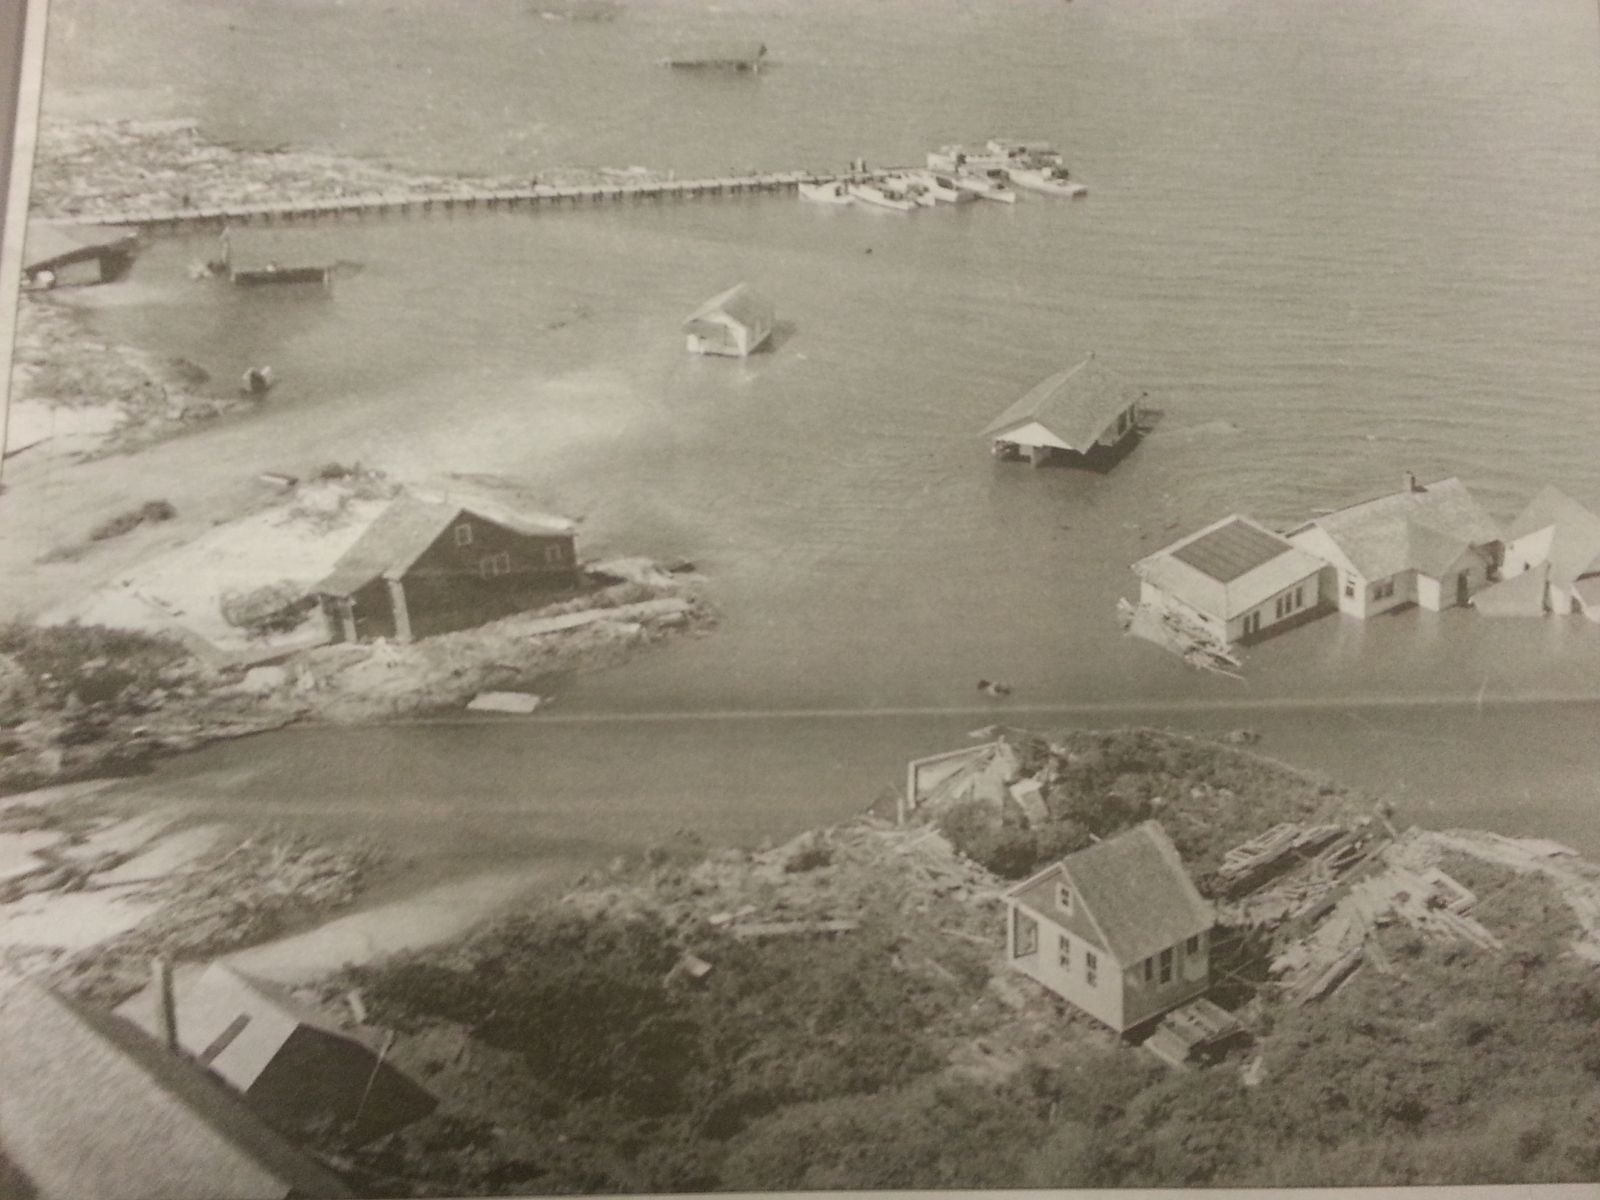 The Great New England Hurricane of 1938 - Damage Photos